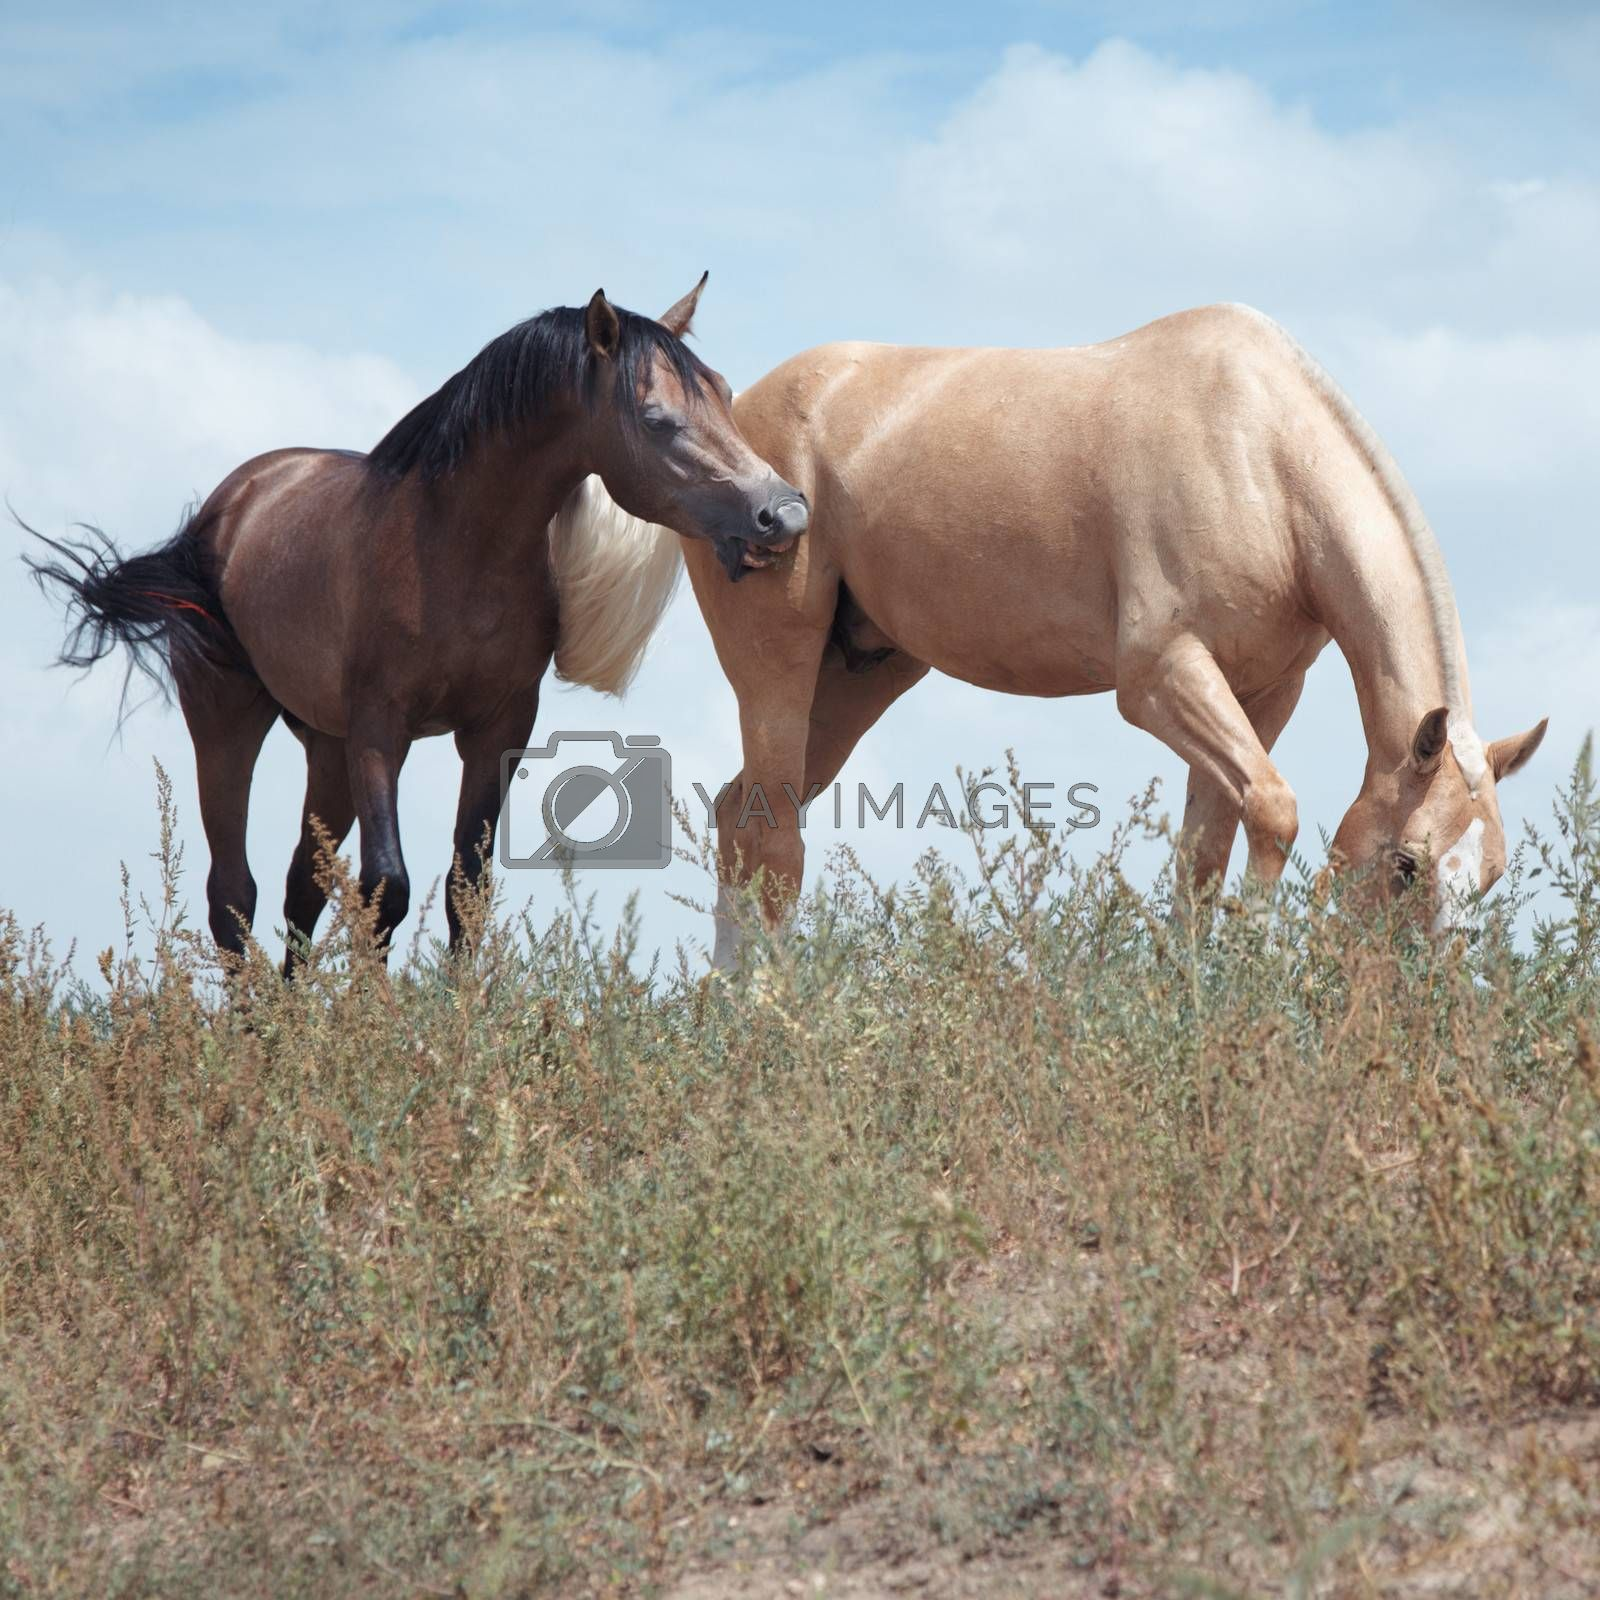 Two horses in the field. Natural colors and light